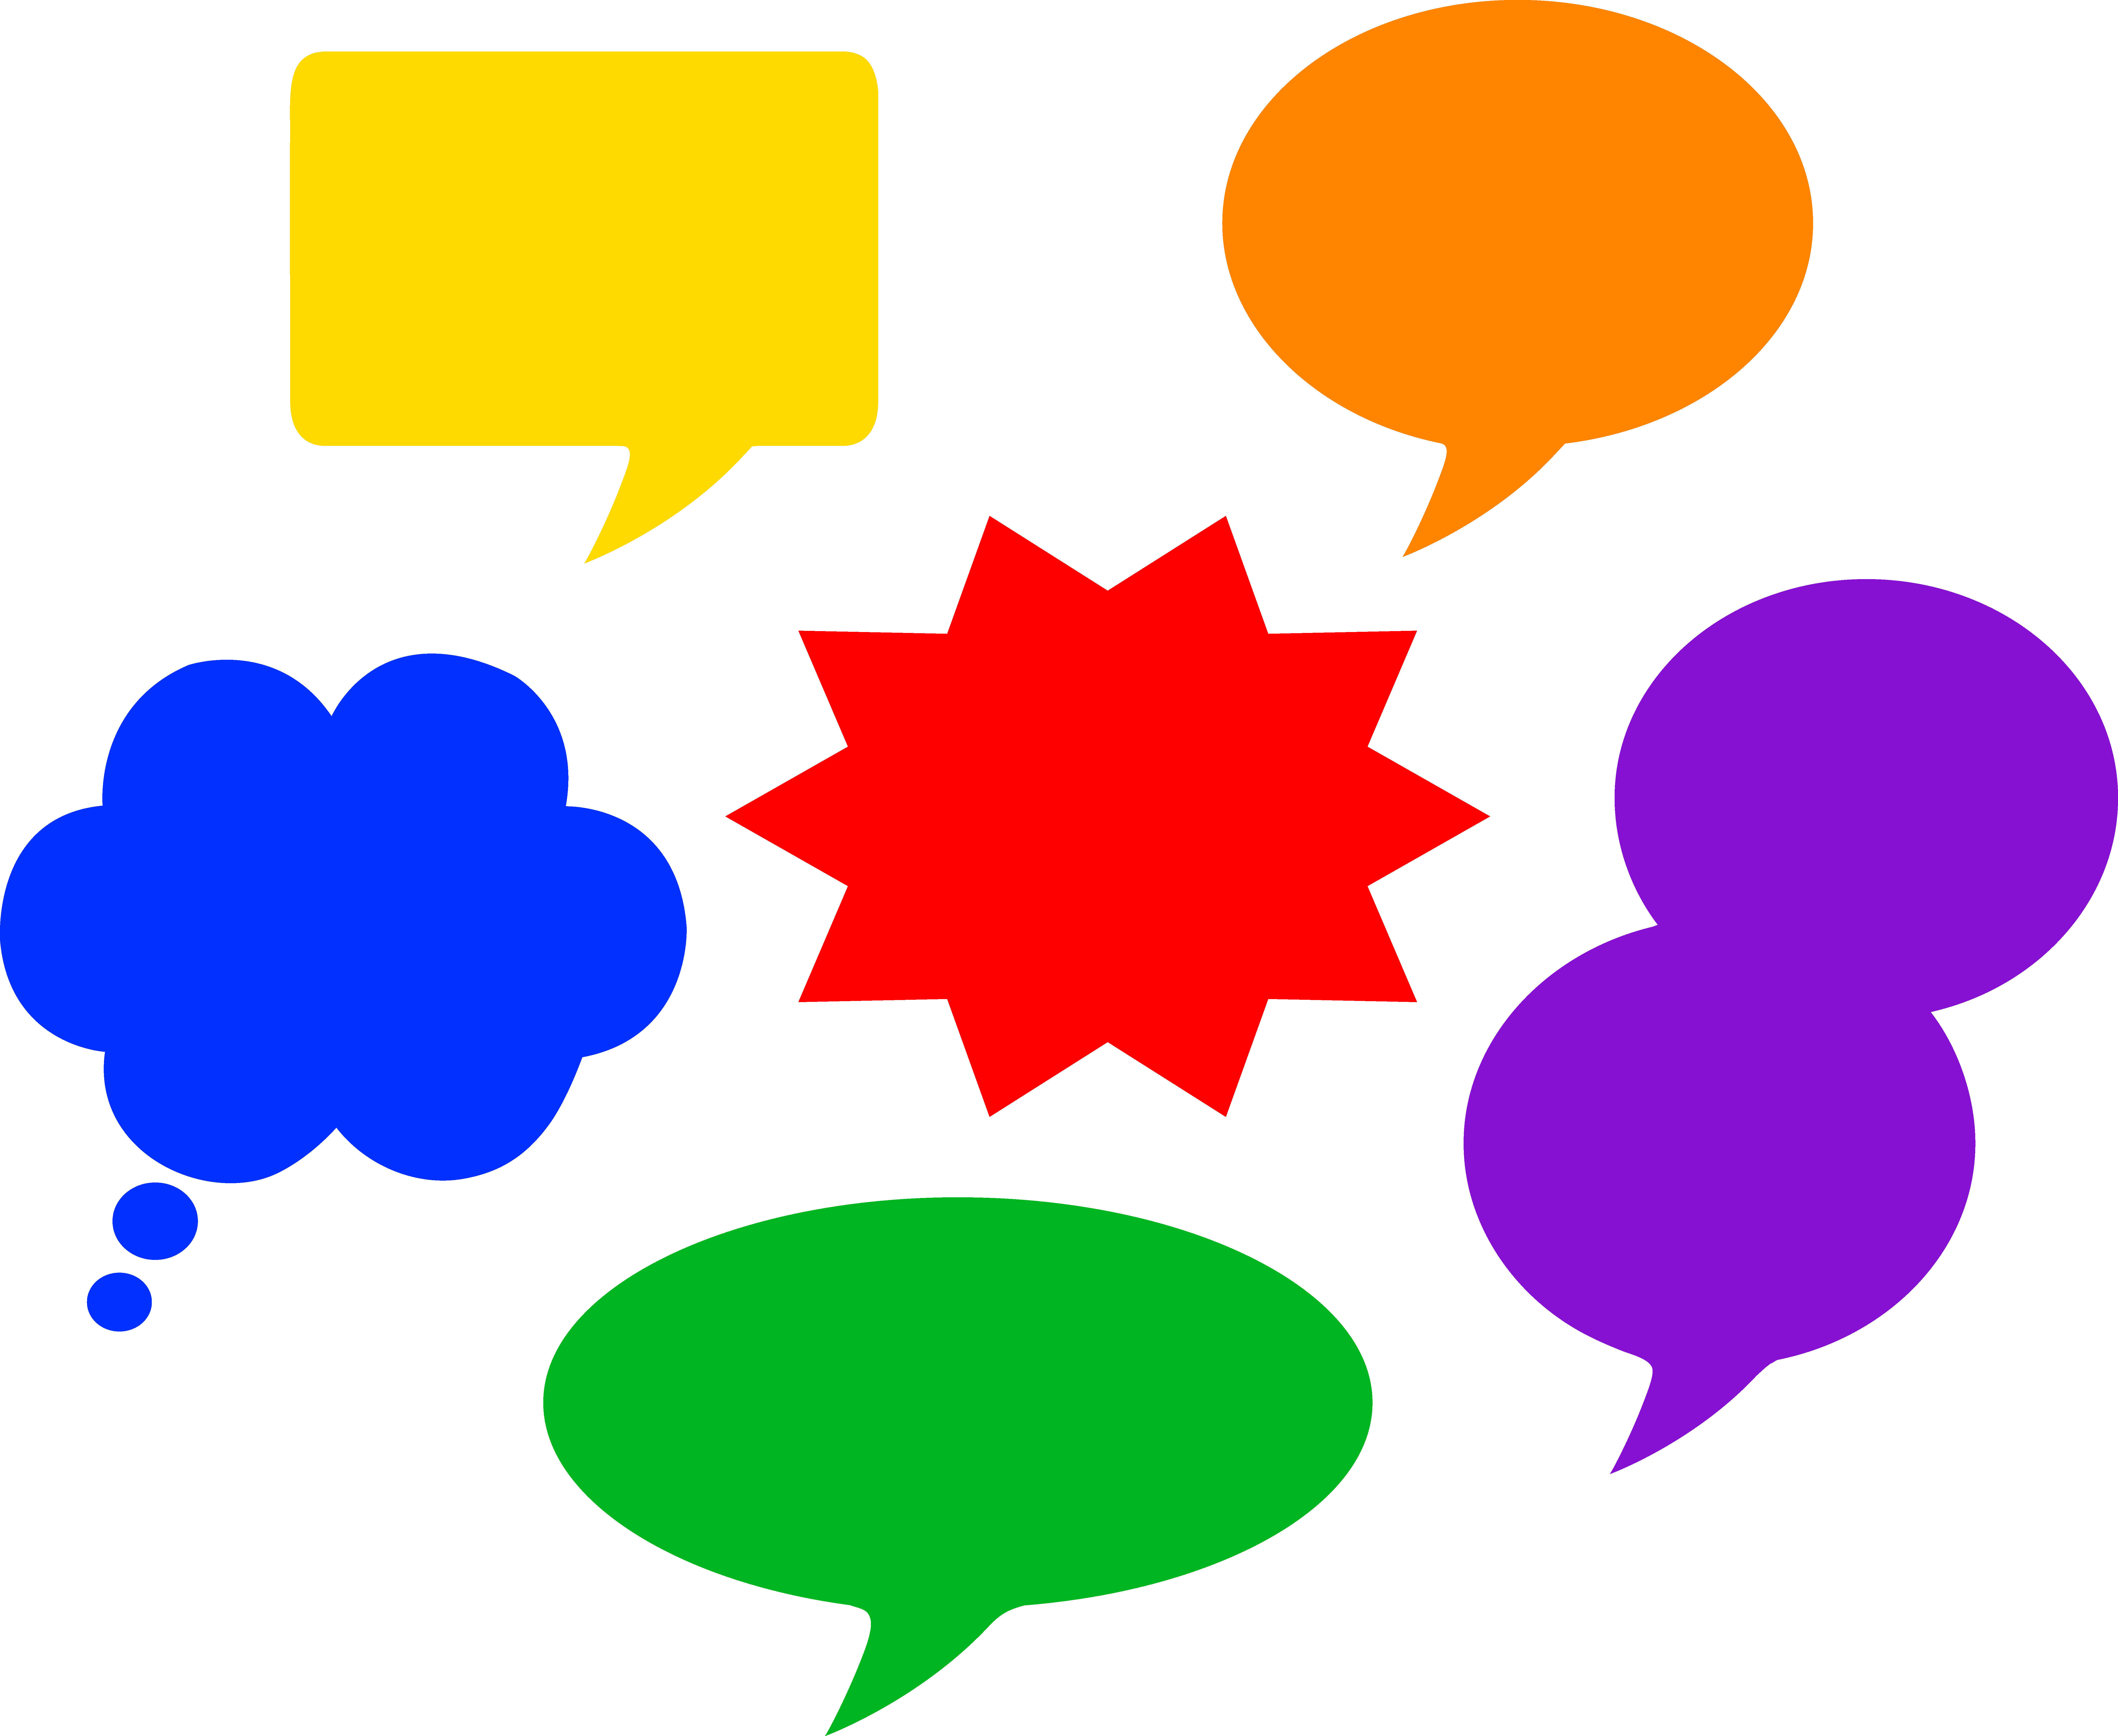 Colorful Comic Style Speech Balloons.